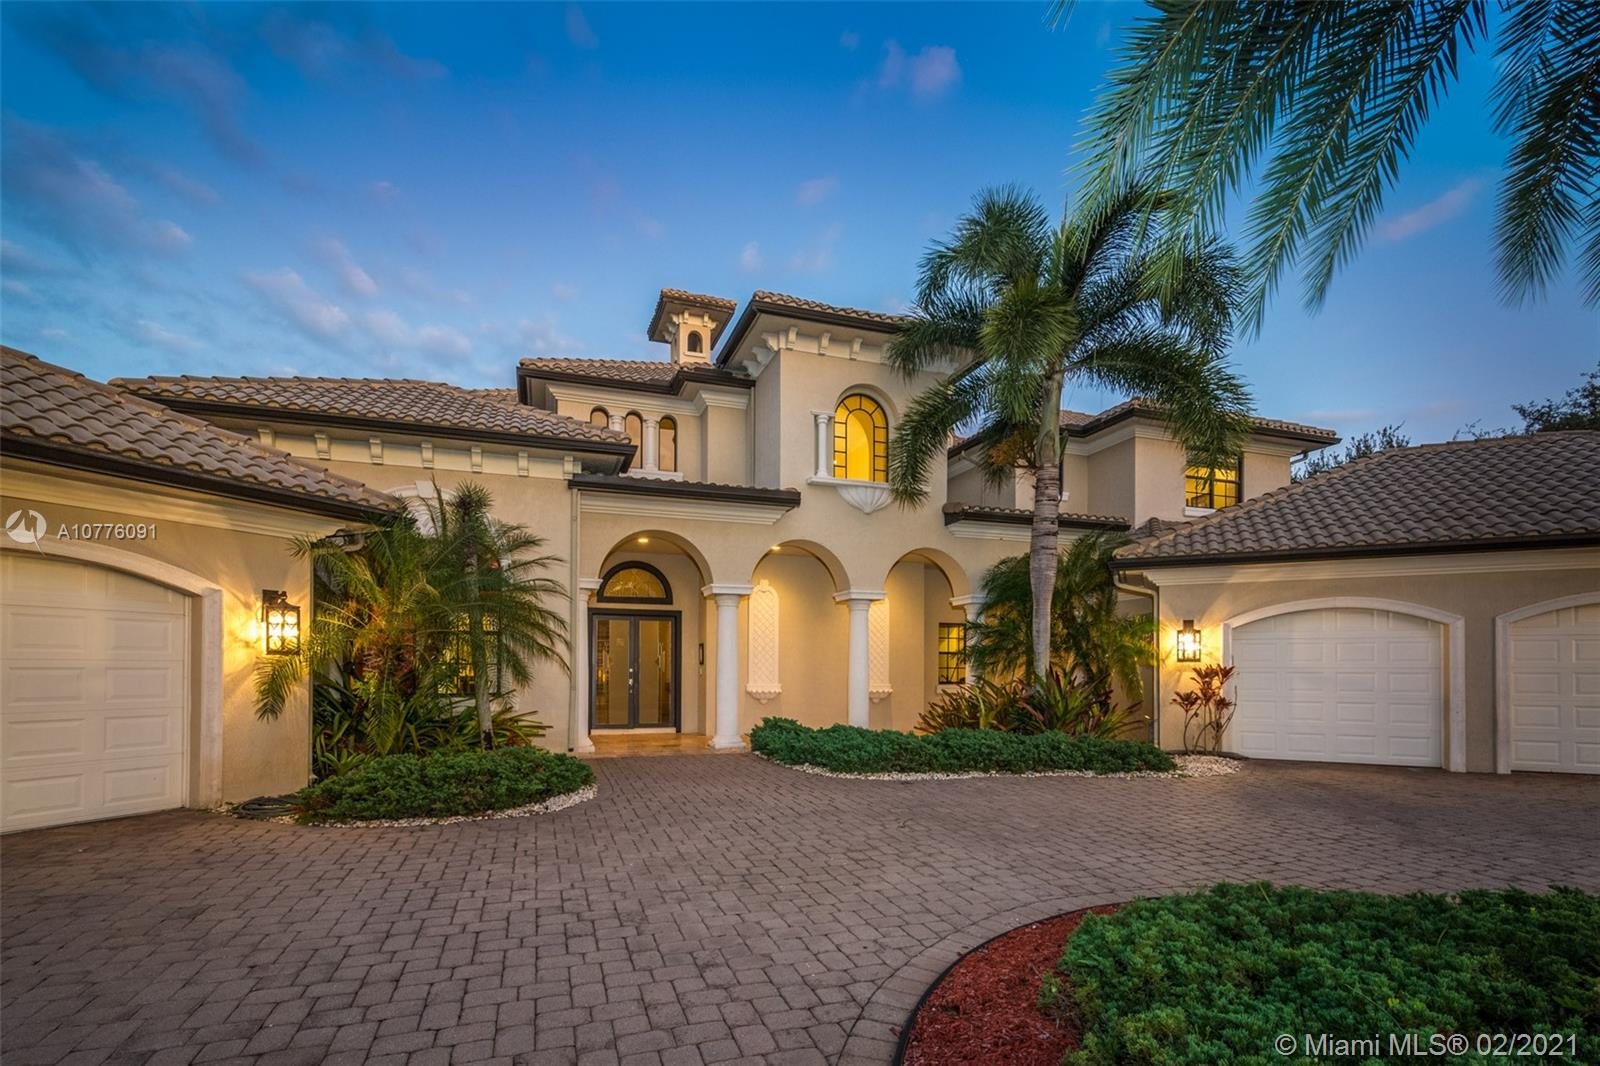 Impressive PRICE REDUCTION. Grand contemporary custom estate home in the heart of Weston in the exclusive gated community of Windmill Reserve. Elegant masterpiece sits on a natural preserve with marble and wood flooring throughout. Master bedroom plus den on first level w/ soaring ceilings and exquisite marble master bath*his/her baths* Jacuzzi* Gourmet kitchen*center island*gas Wolf range*high end subzero refrigerator and appliances. Acre plus fully fenced water lot*resort style travertine pool*fully equipped summer kitchen and entertainment area*heated spa*beach entry* billiard room, home theater, sauna room, bar area and Full impact*Second level with three spacious bedrooms plus two lofts*